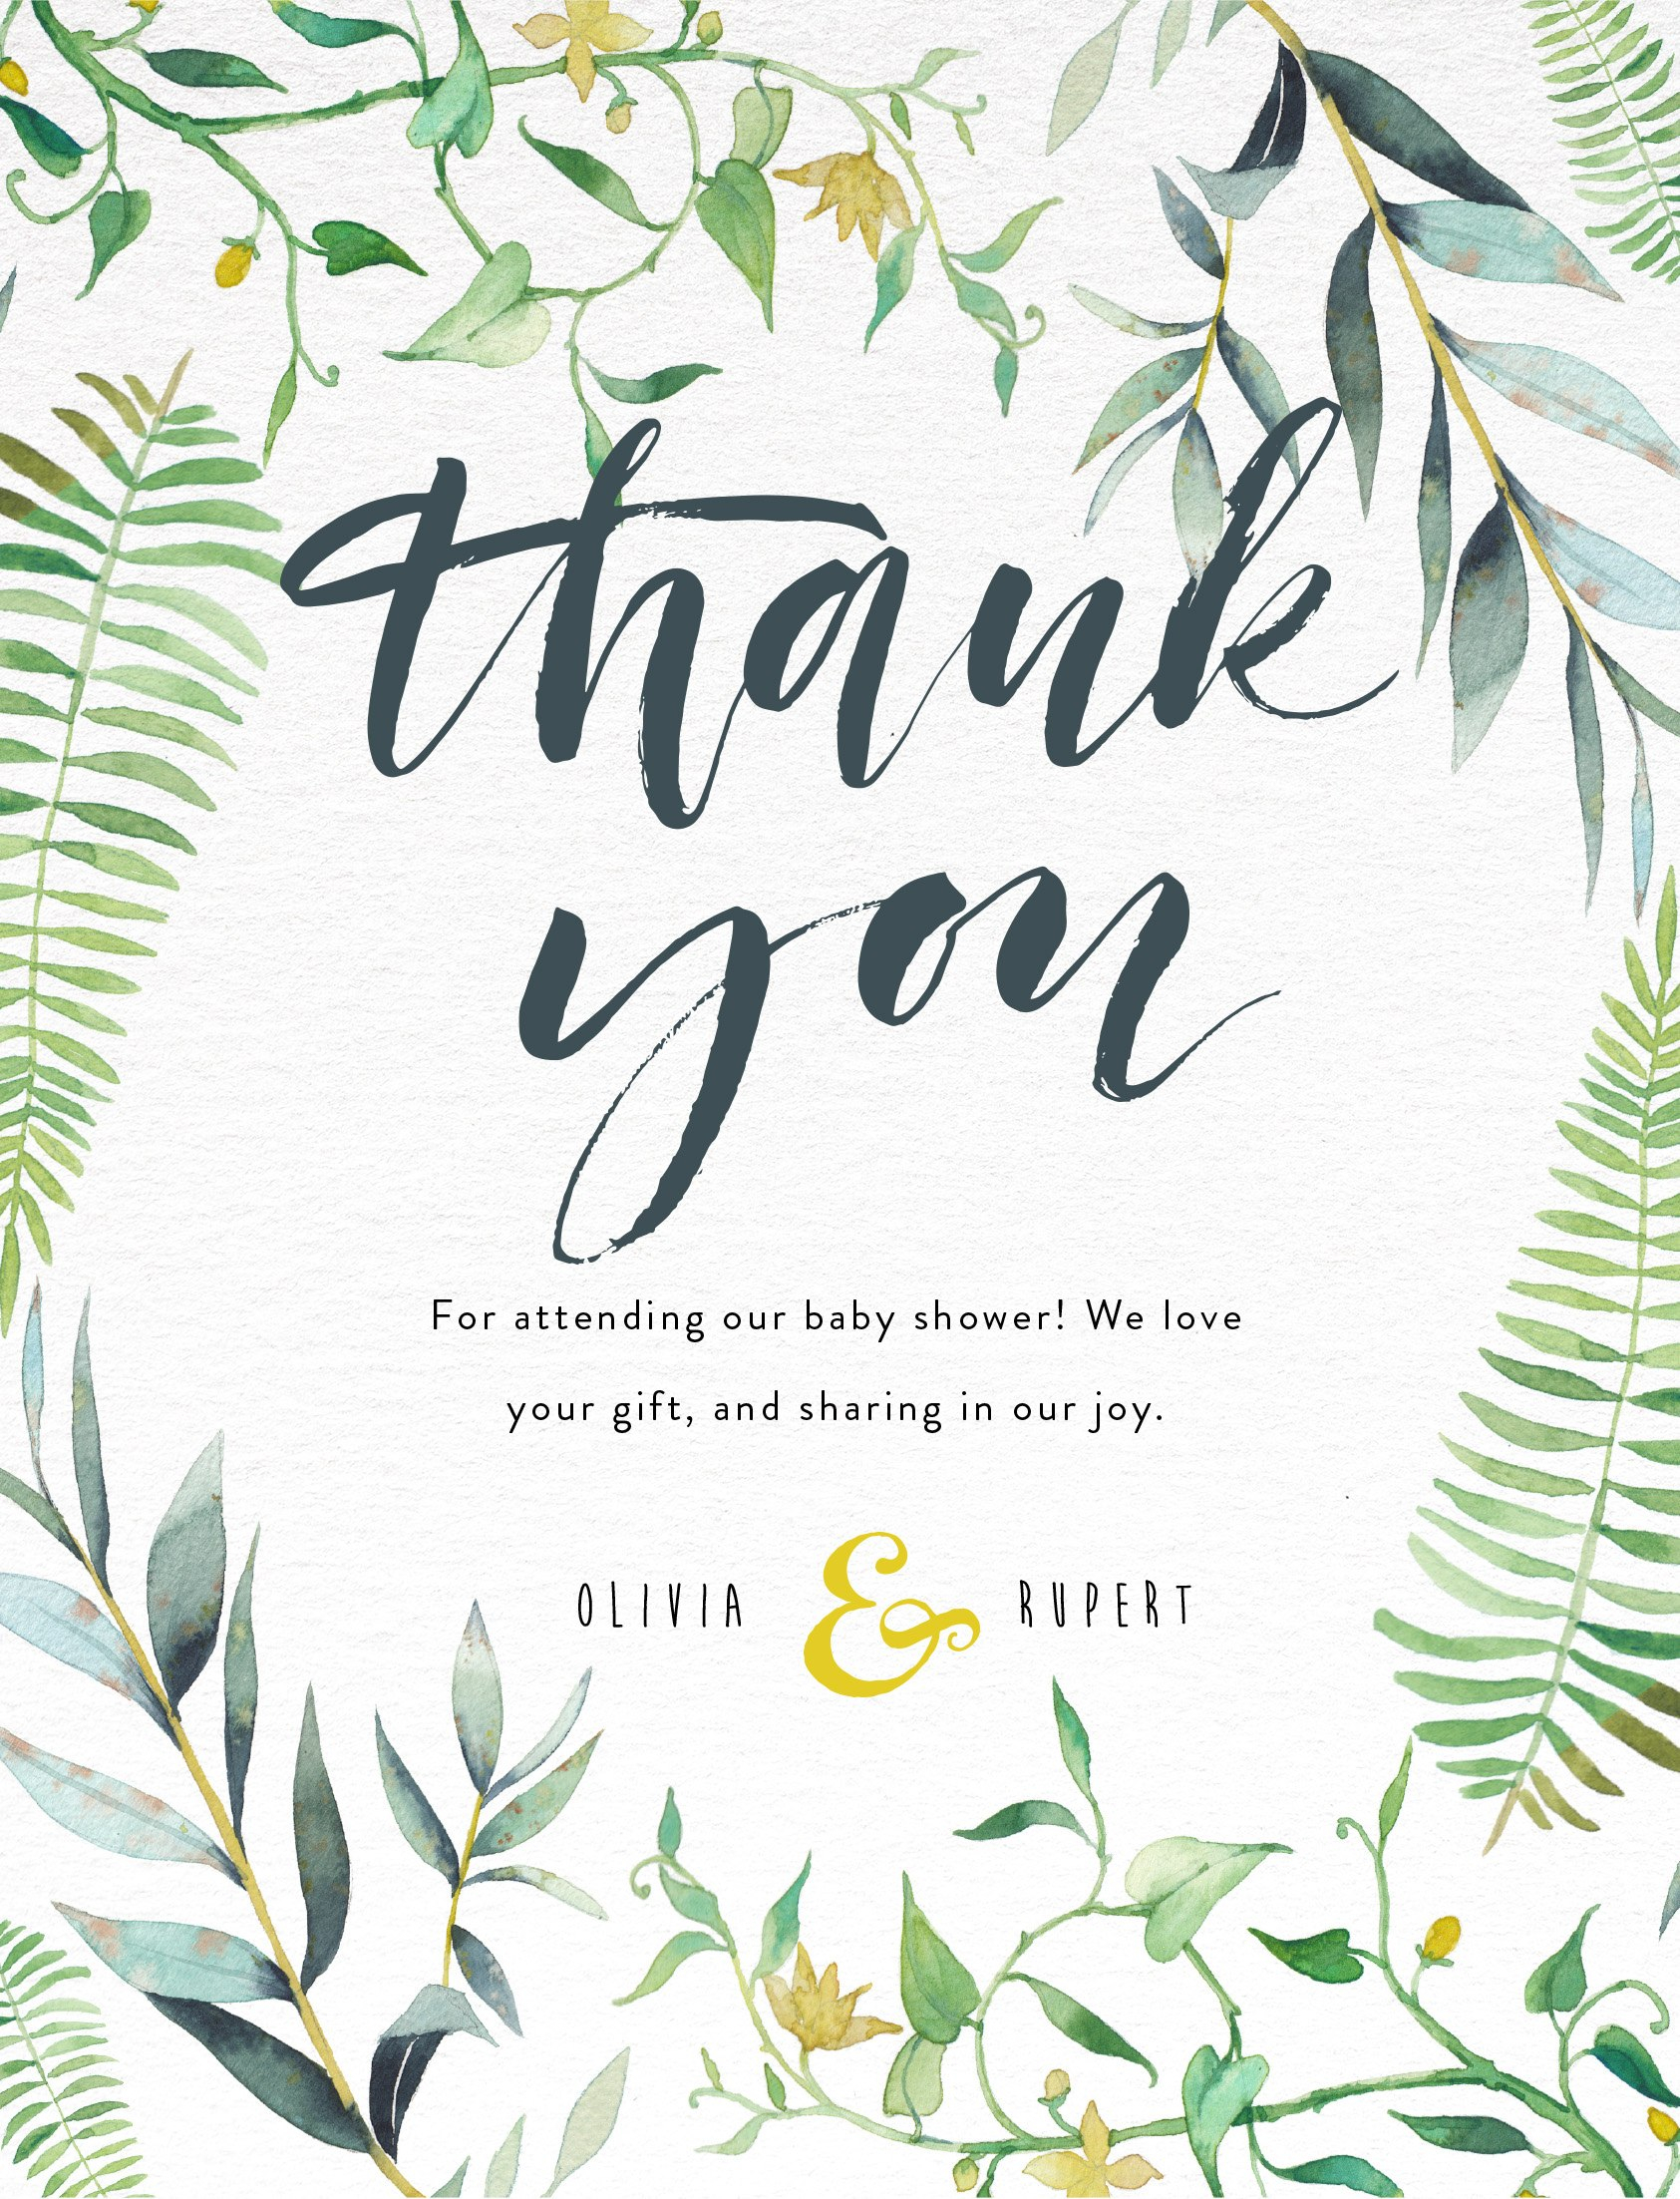 Baby Shower Thank You Cards  Customise  Print Online With Paperlust Throughout Template For Baby Shower Thank You Cards